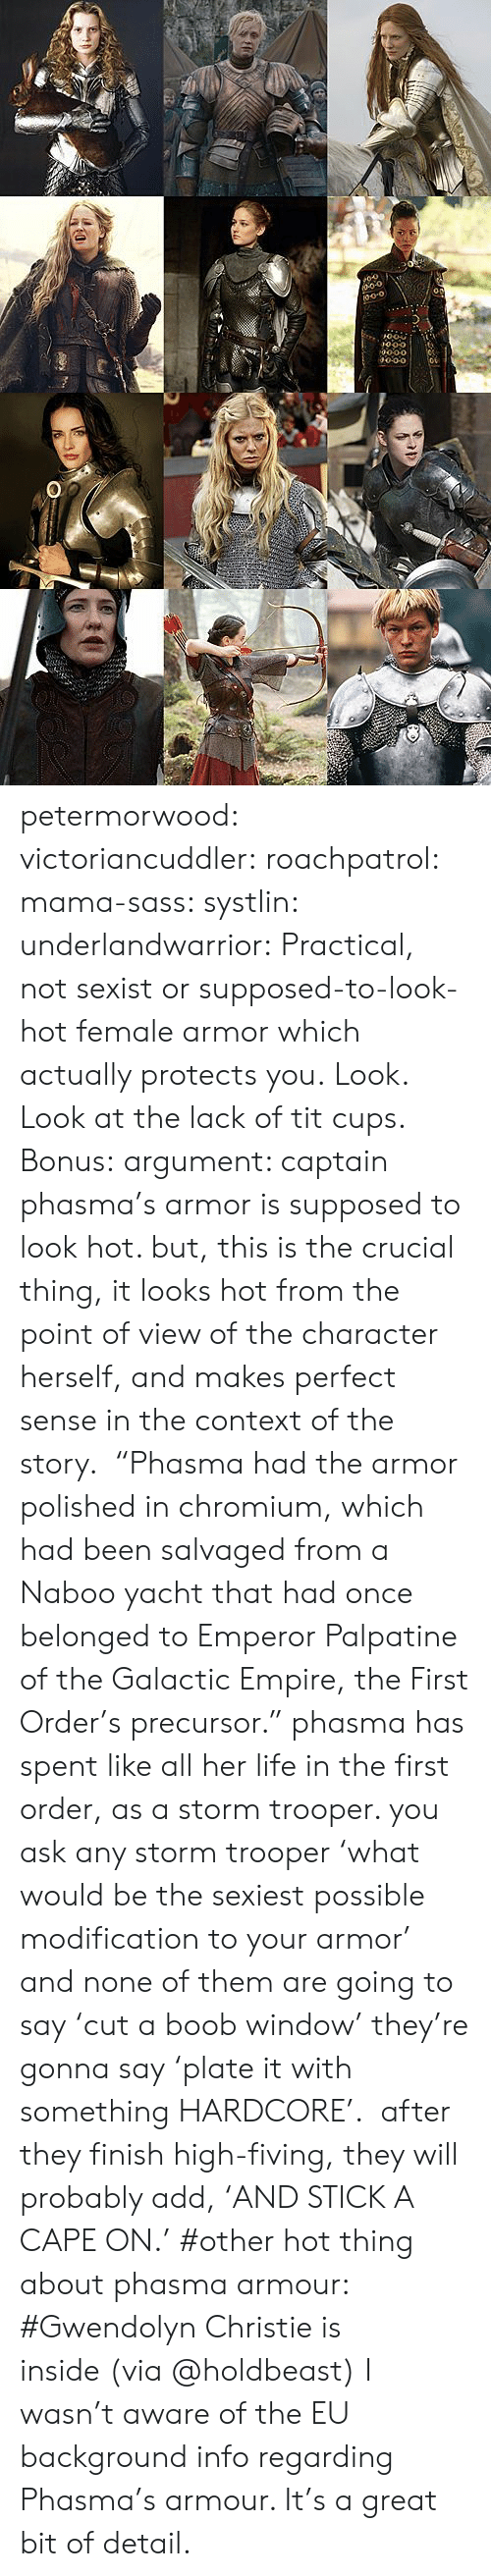 "sexist: 0-o  O0-o petermorwood:  victoriancuddler:  roachpatrol:  mama-sass:  systlin:  underlandwarrior:  Practical, not sexist or supposed-to-look-hot female armor which actually protects you.  Look.  Look at the lack of tit cups.   Bonus:  argument: captain phasma's armor is supposed to look hot. but, this is the crucial thing, it looks hot from the point of view of the character herself, and makes perfect sense in the context of the story.  ""Phasma had the armor polished in chromium, which had been salvaged from a Naboo yacht that had once belonged to Emperor Palpatine of the Galactic Empire, the First Order's precursor."" phasma has spent like all her life in the first order, as a storm trooper. you ask any storm trooper 'what would be the sexiest possible modification to your armor' and none of them are going to say 'cut a boob window' they're gonna say 'plate it with something HARDCORE'.  after they finish high-fiving, they will probably add, 'AND STICK A CAPE ON.'    #other hot thing about phasma armour: #Gwendolyn Christie is inside (via @holdbeast)  I wasn't aware of the EU background info regarding Phasma's armour. It's a great bit of detail."